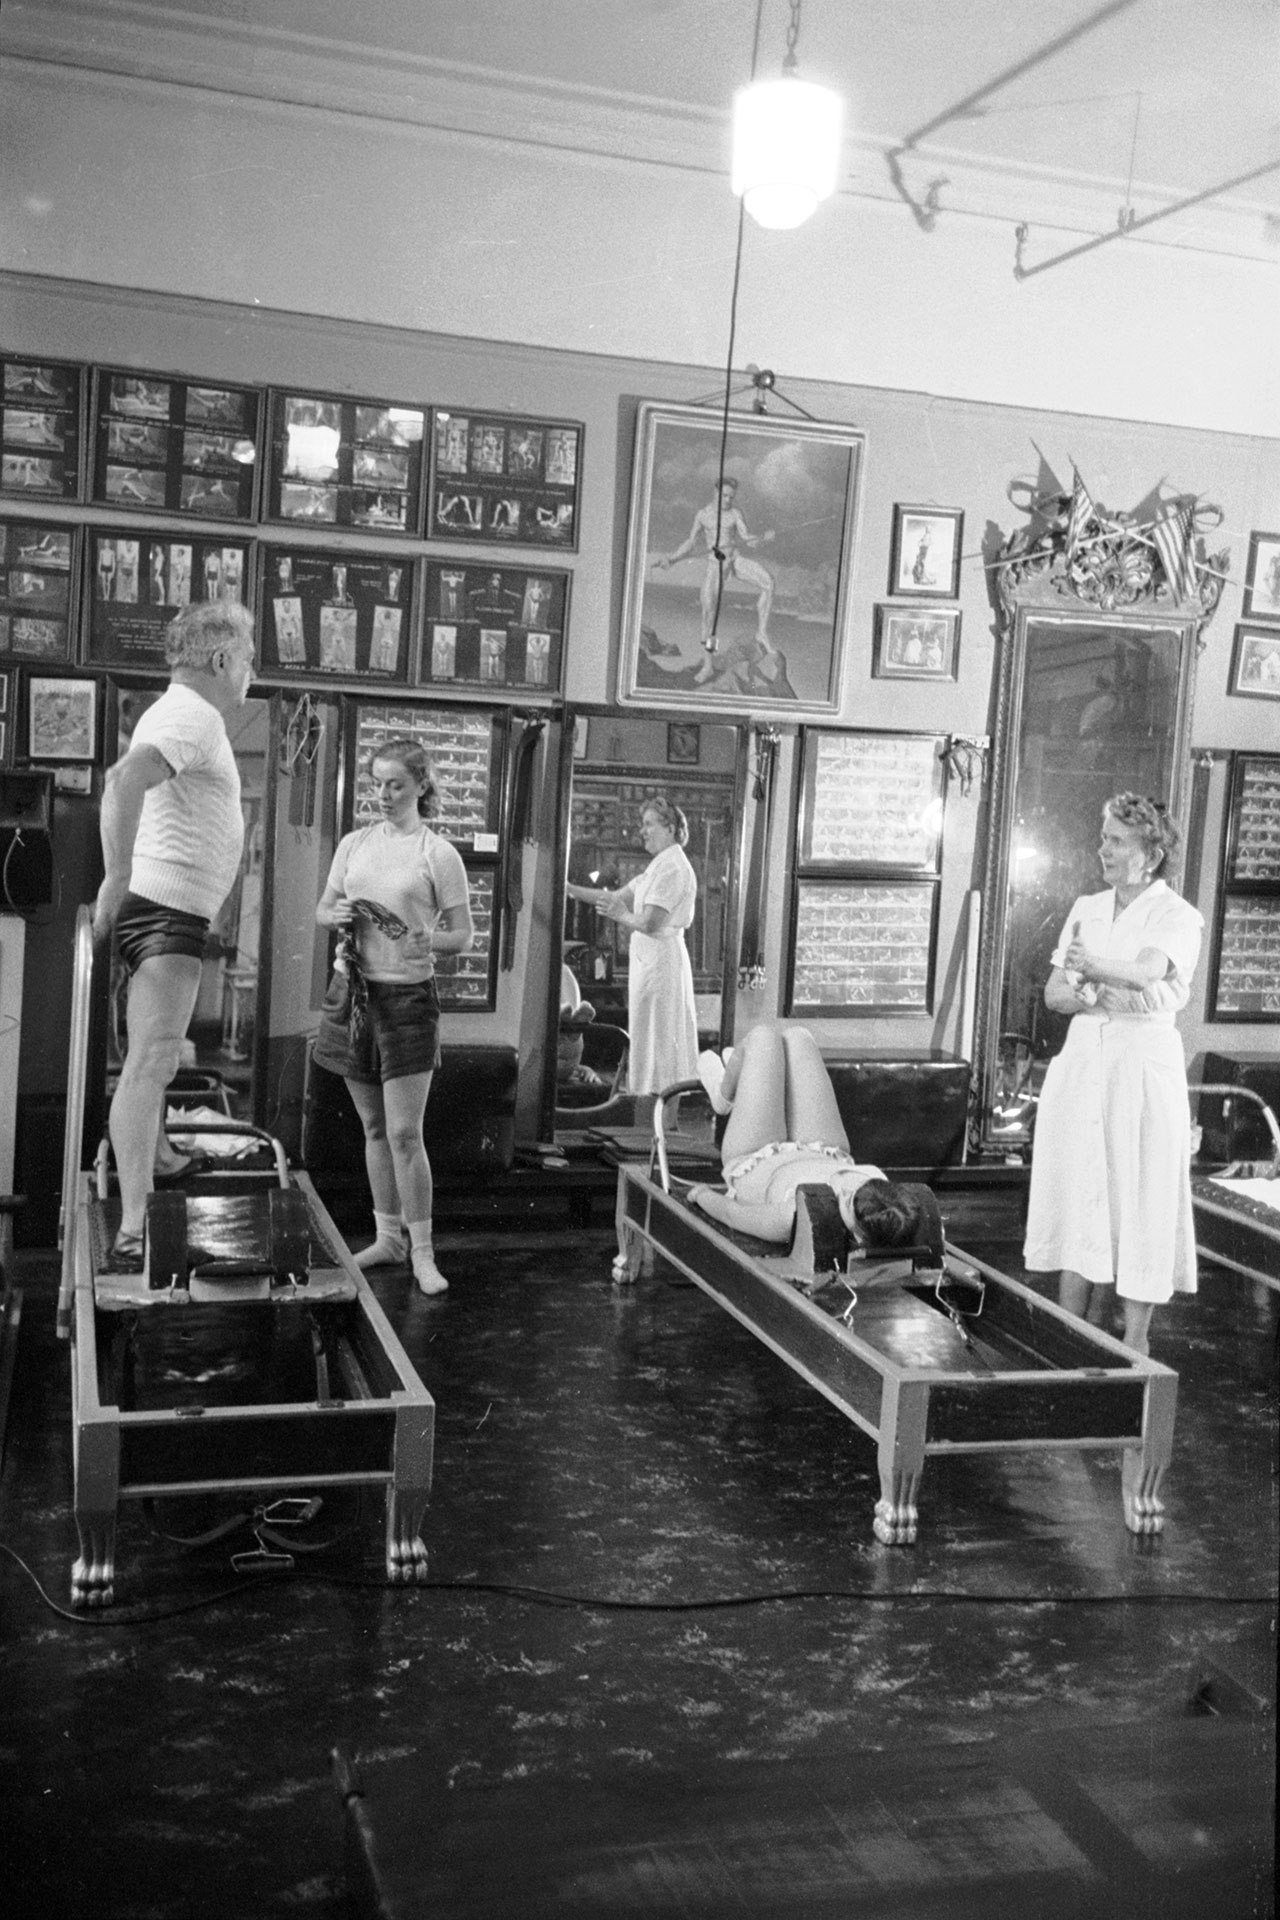 The 100-year history of Pilates: from niche workout to global fitness phenomenon